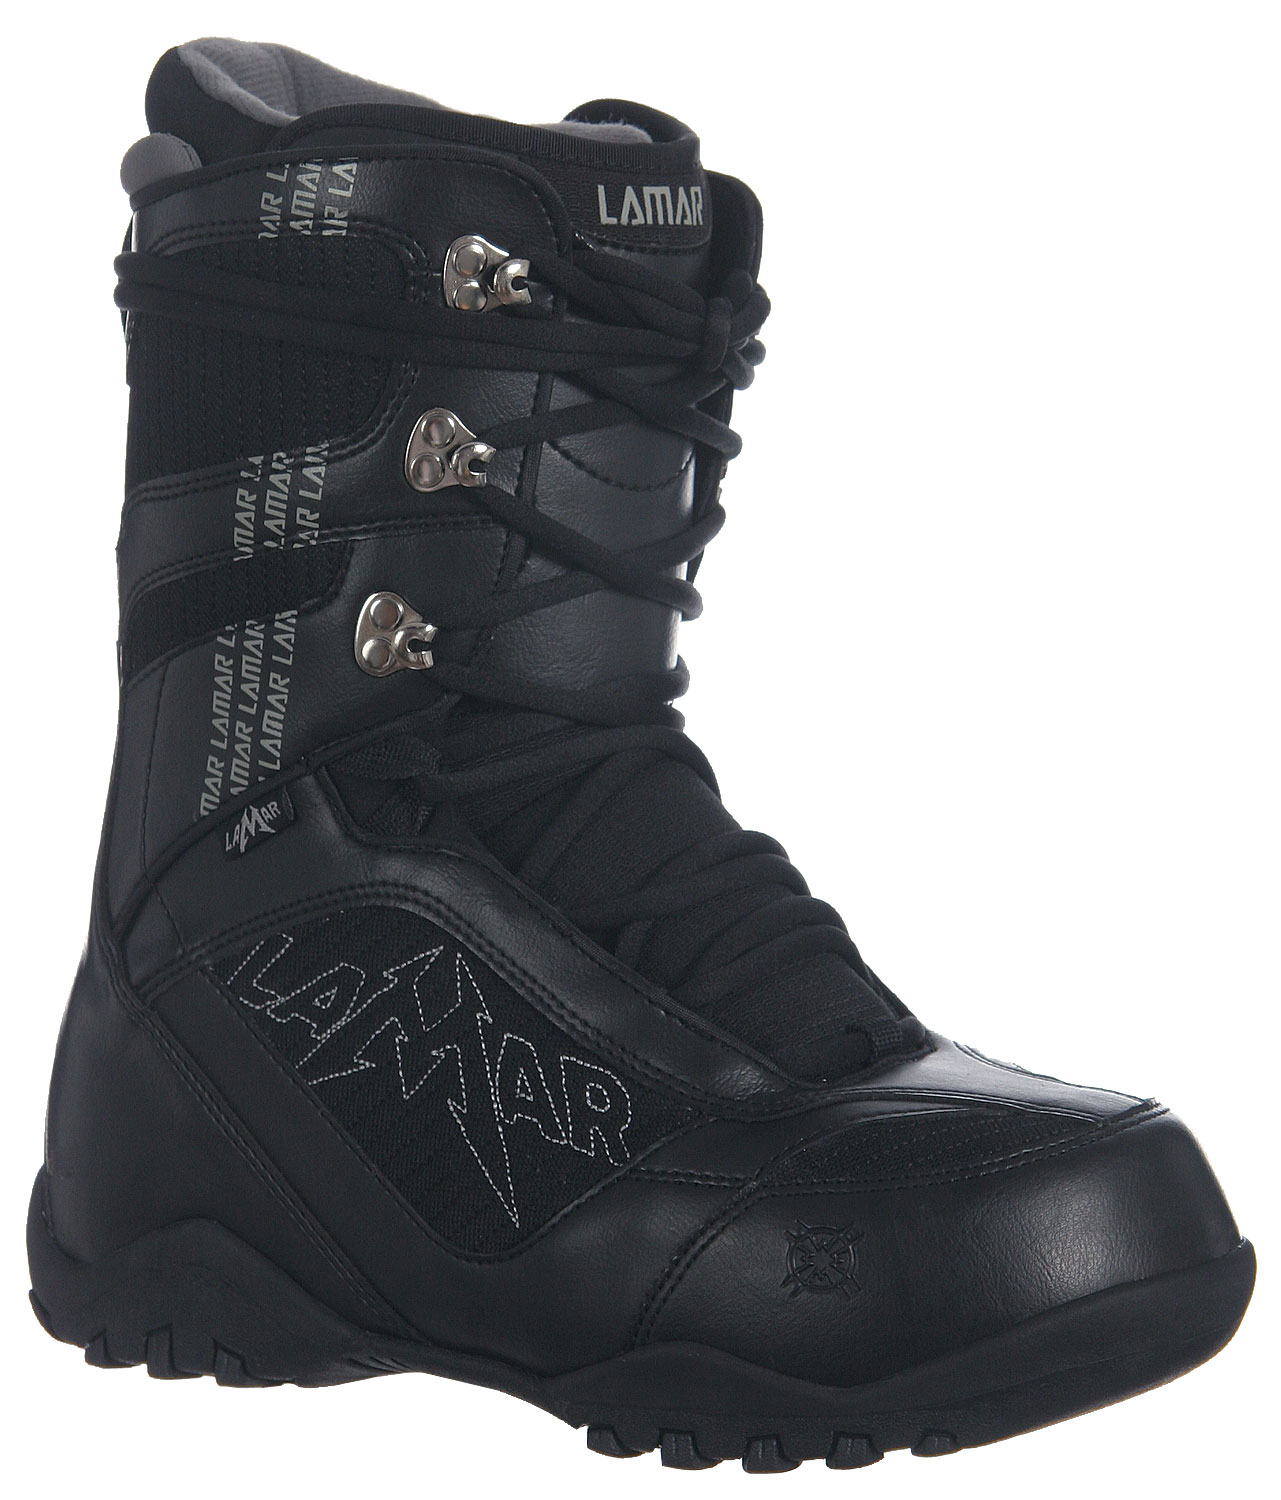 Snowboard Your feet deserve the best when snowboarding, so why not buy them the best? Lamar Justice Snowboard Boots are the best choice for comfort and style when you tear down the slopes. They feature upgraded materials such as the flex zone tongue, which helps the boots be put on easier and the soft touch lacing so the boots are not a pain to tie. The Lamar Justice Snowboard Boots also have a low profile dual density outsole to protect your feet from injury in case you have a fall.Key Features of The Lamar Justice Snowboard Boots: PL Articulated Lace Up Liner with EVA Footbed Low Profile Dual Density Outsole Soft Touch Lacing Tongue Gussets with Micro Injected Pull Tab Flex Zone Tongue Upgraded Materials - $59.95